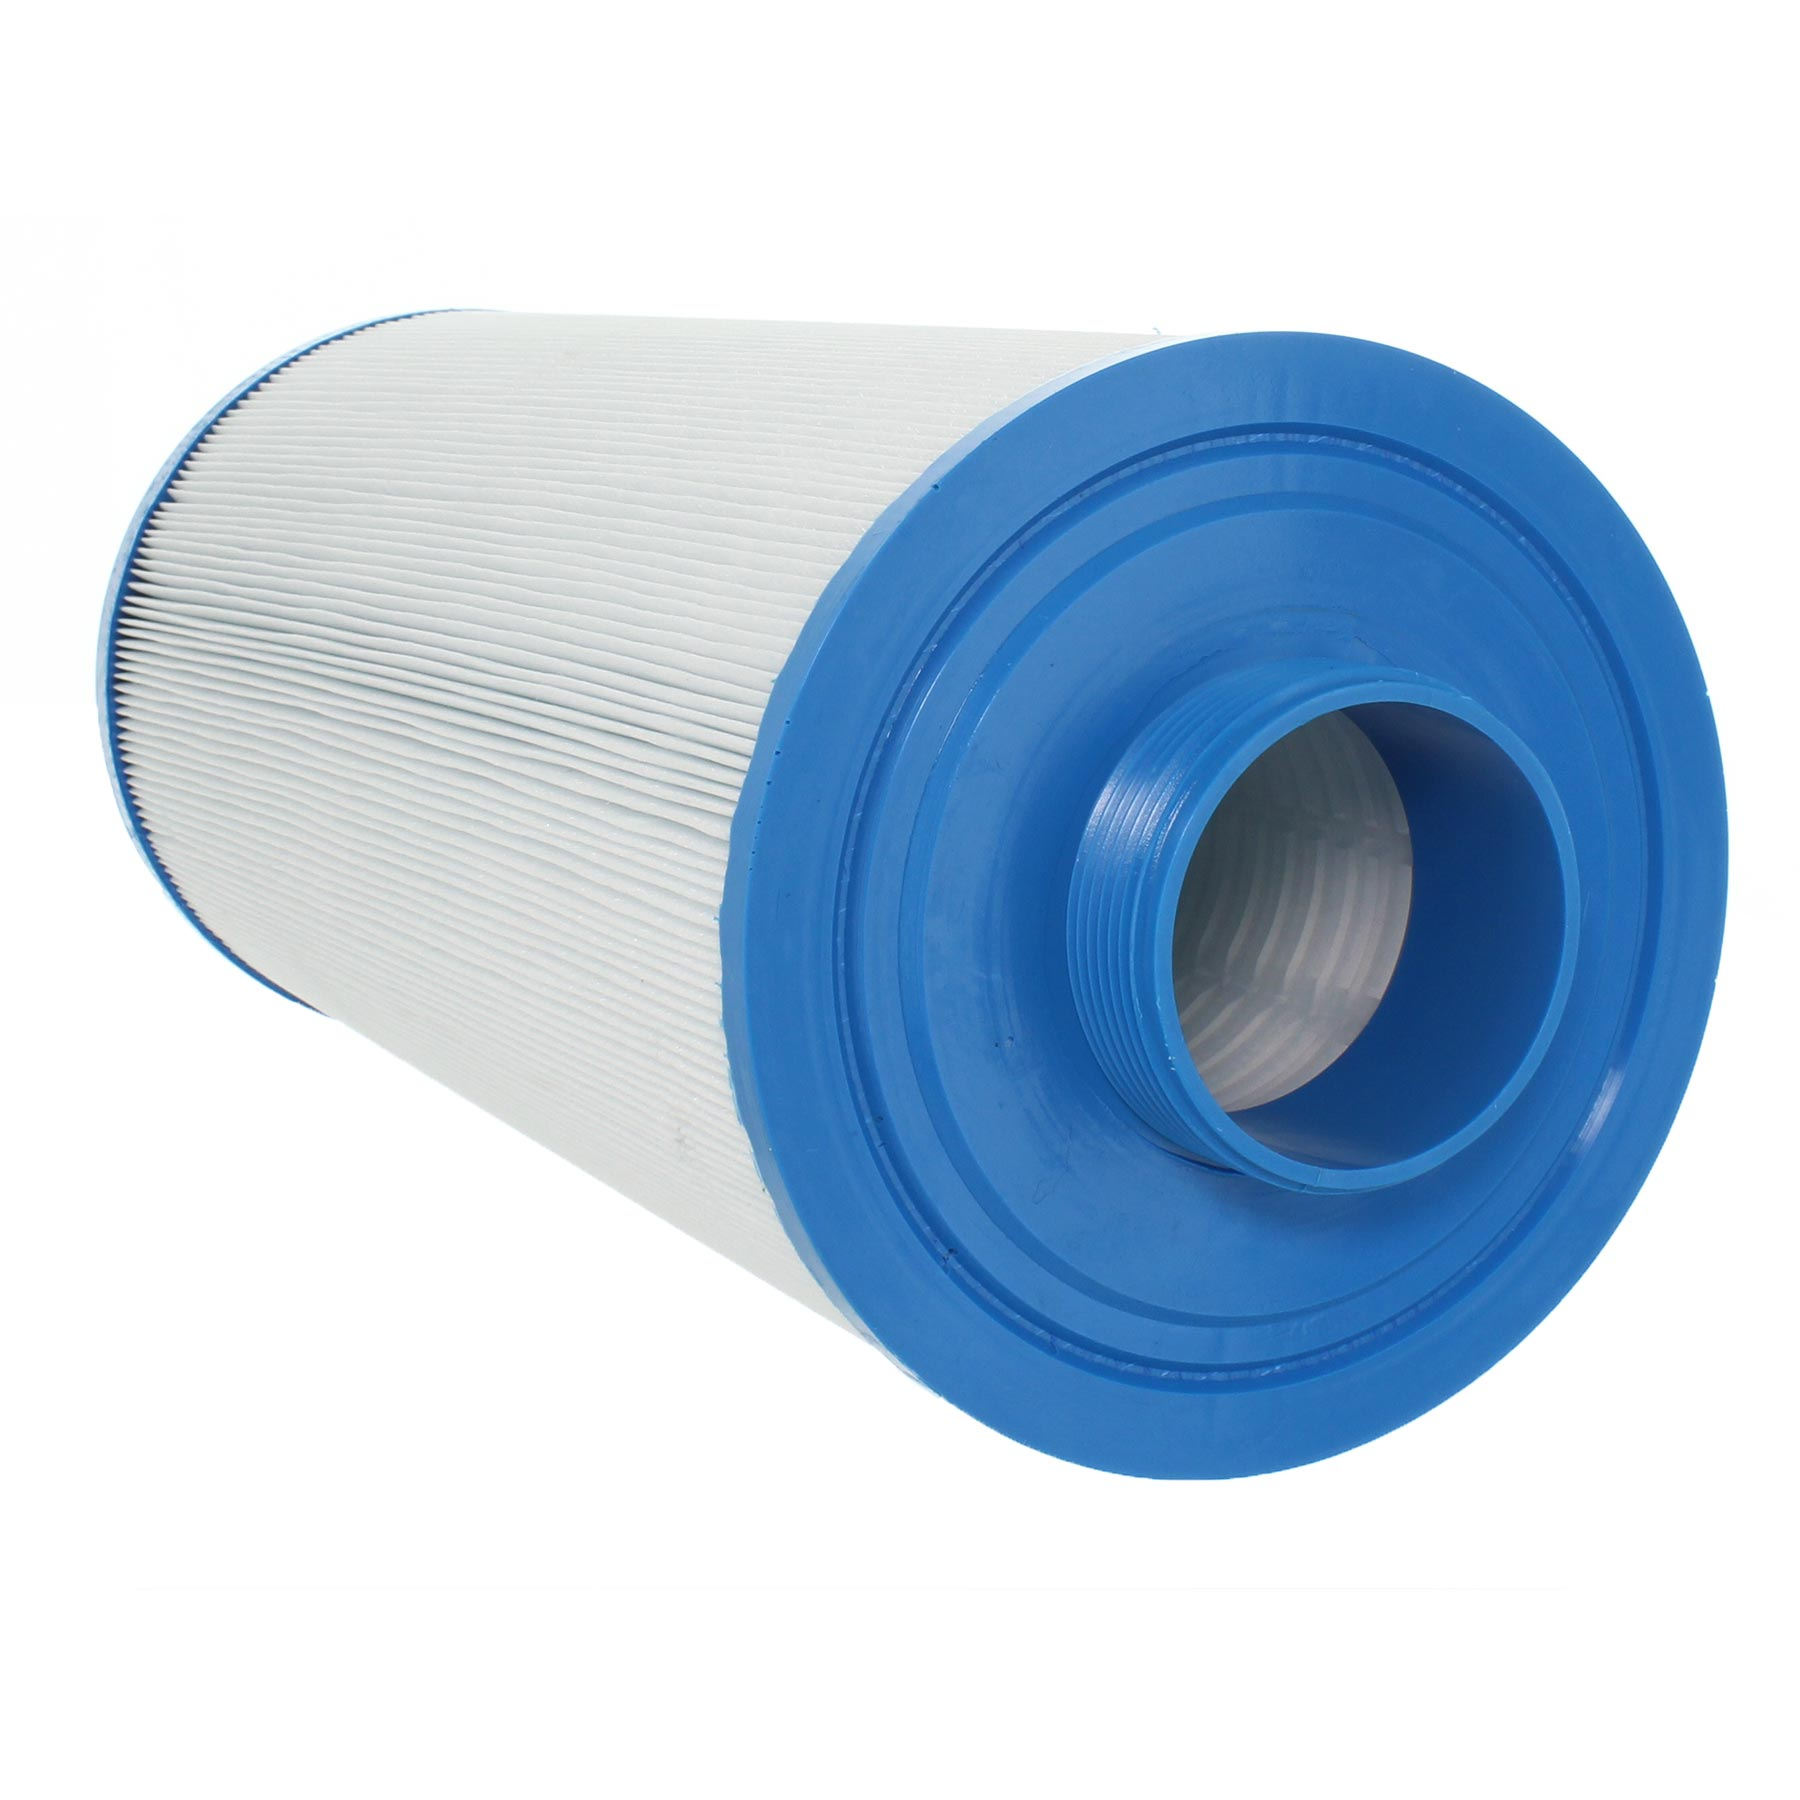 Replaces Unicel 5CH-402, Filbur FC-2811 • Pool & Spa Filter Cartridge-Filter Cartridge-FilterDeal.com